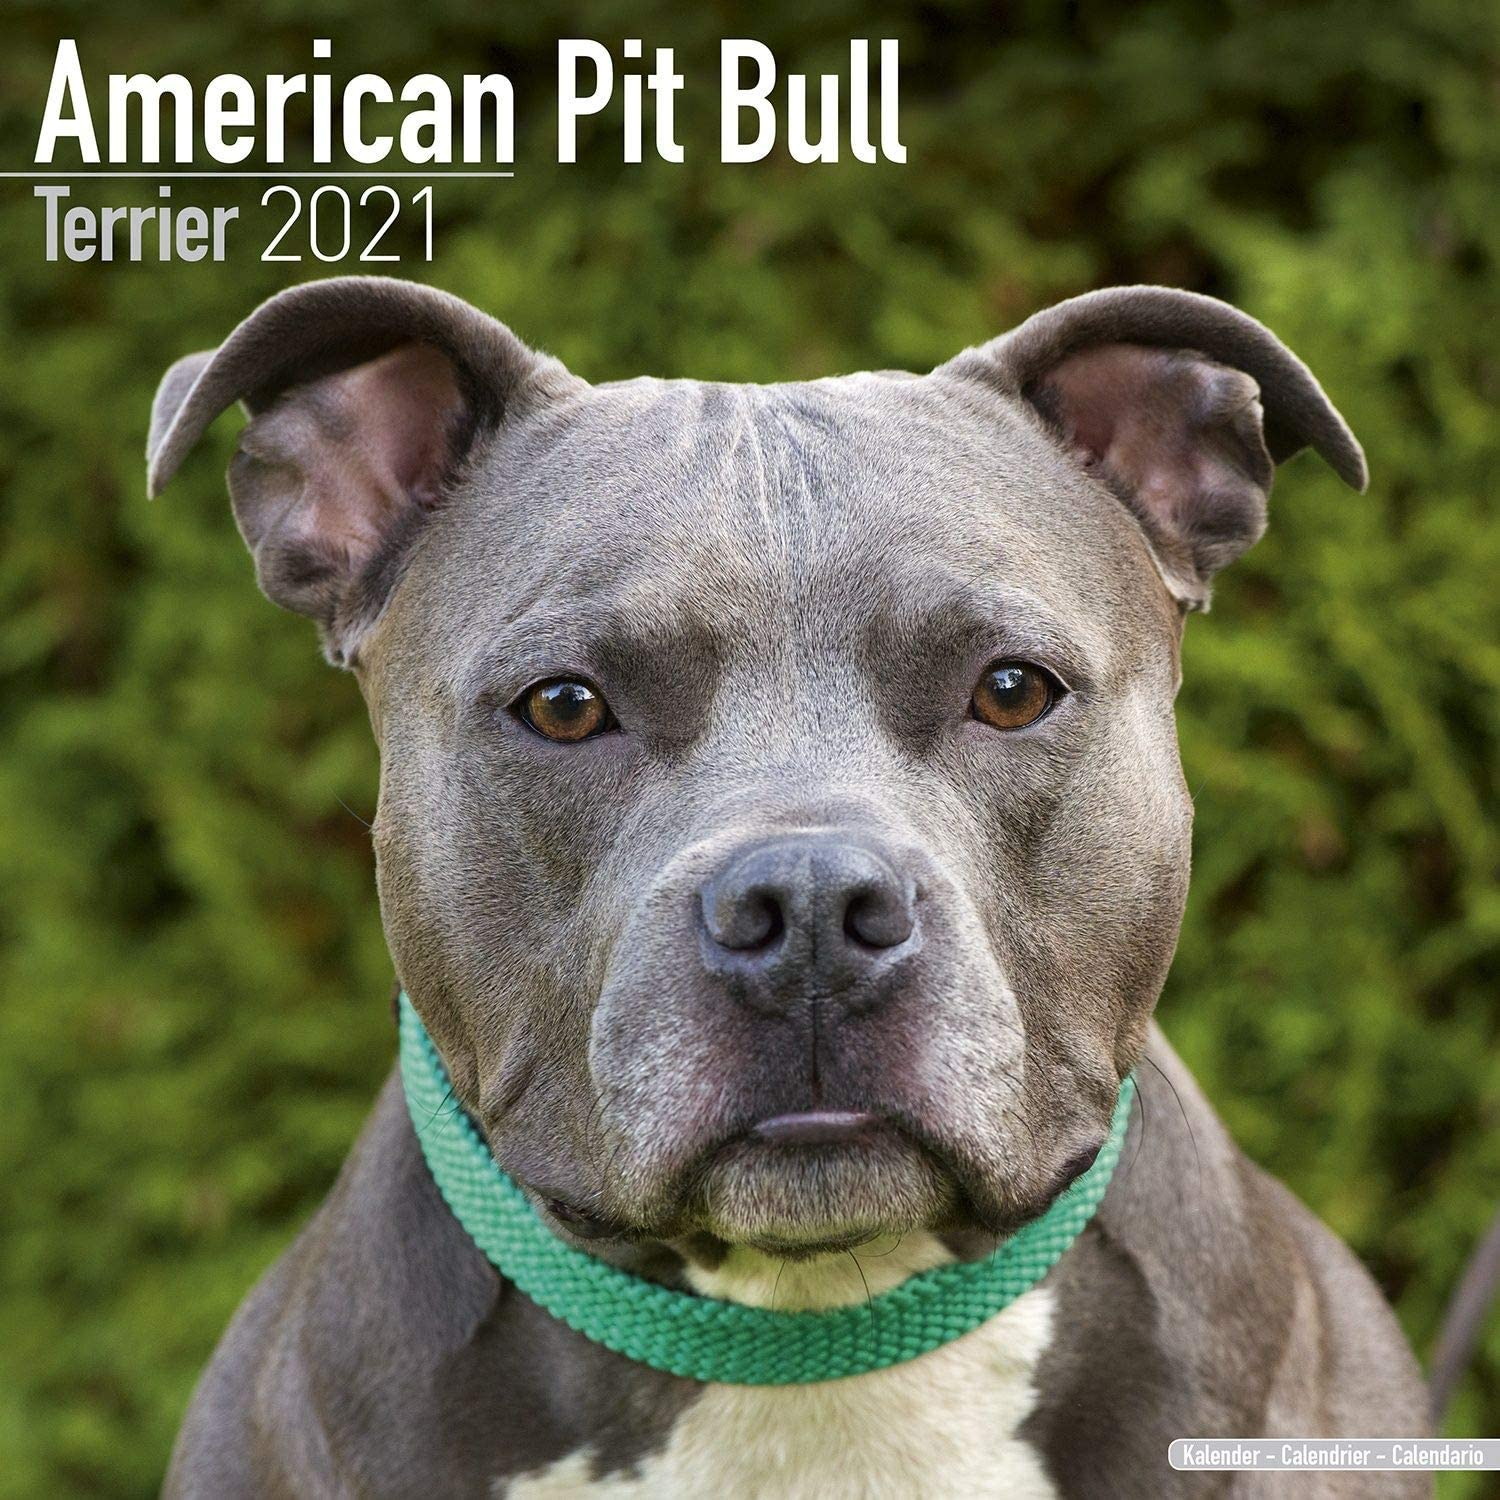 Amazon.com: American Pit Bull Terrier Calendar 2021   Dog Breed